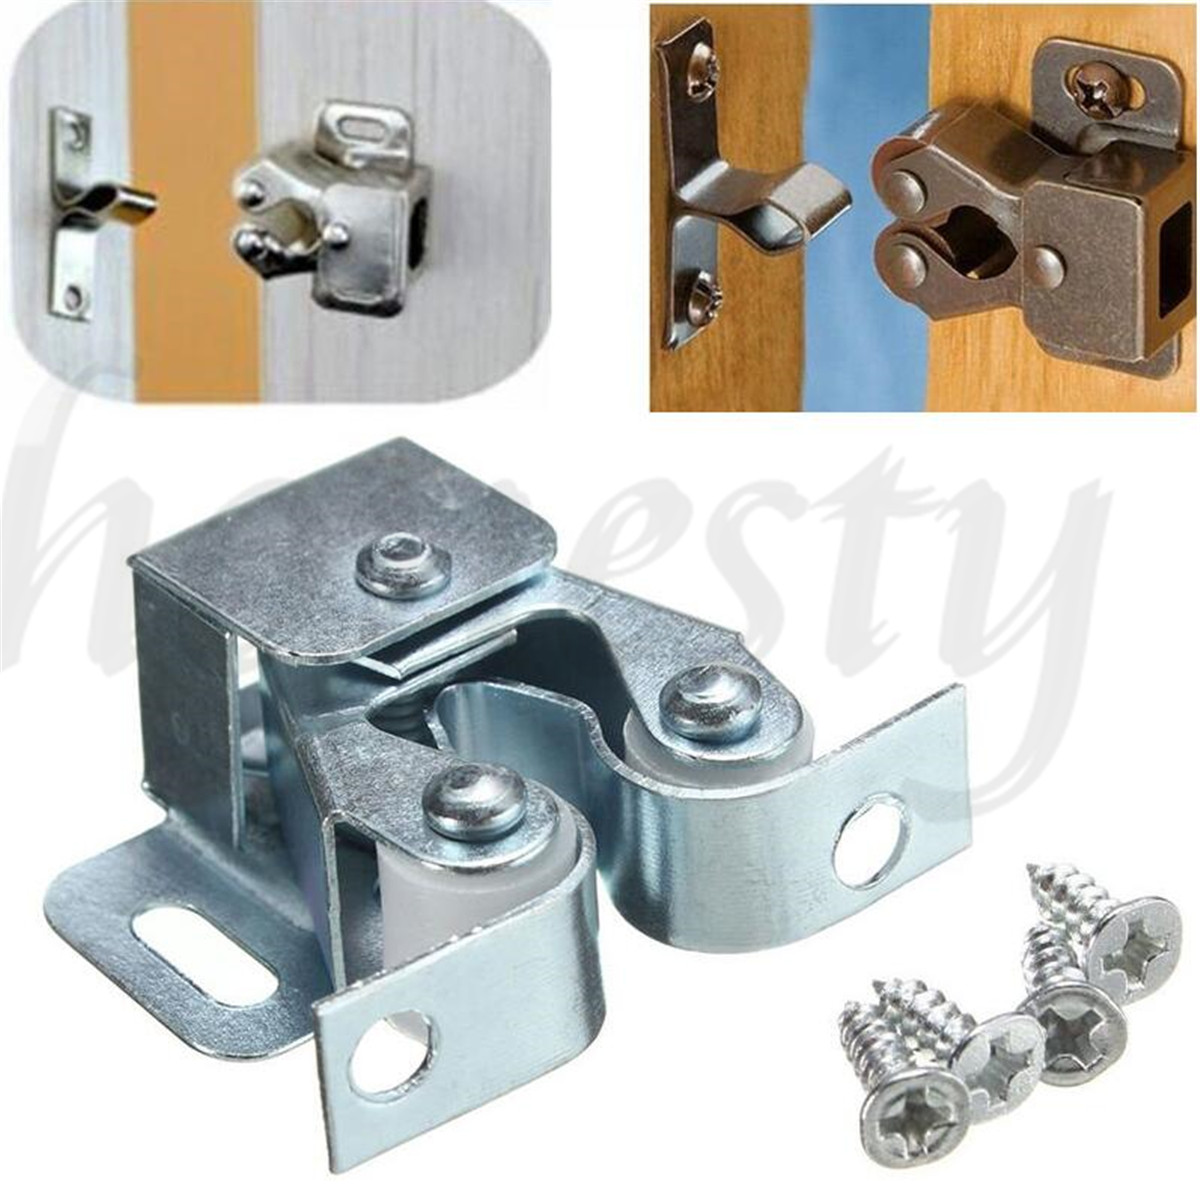 cupboard anvil atc pewter latch door set p traditional finishes products privacy beeswax black